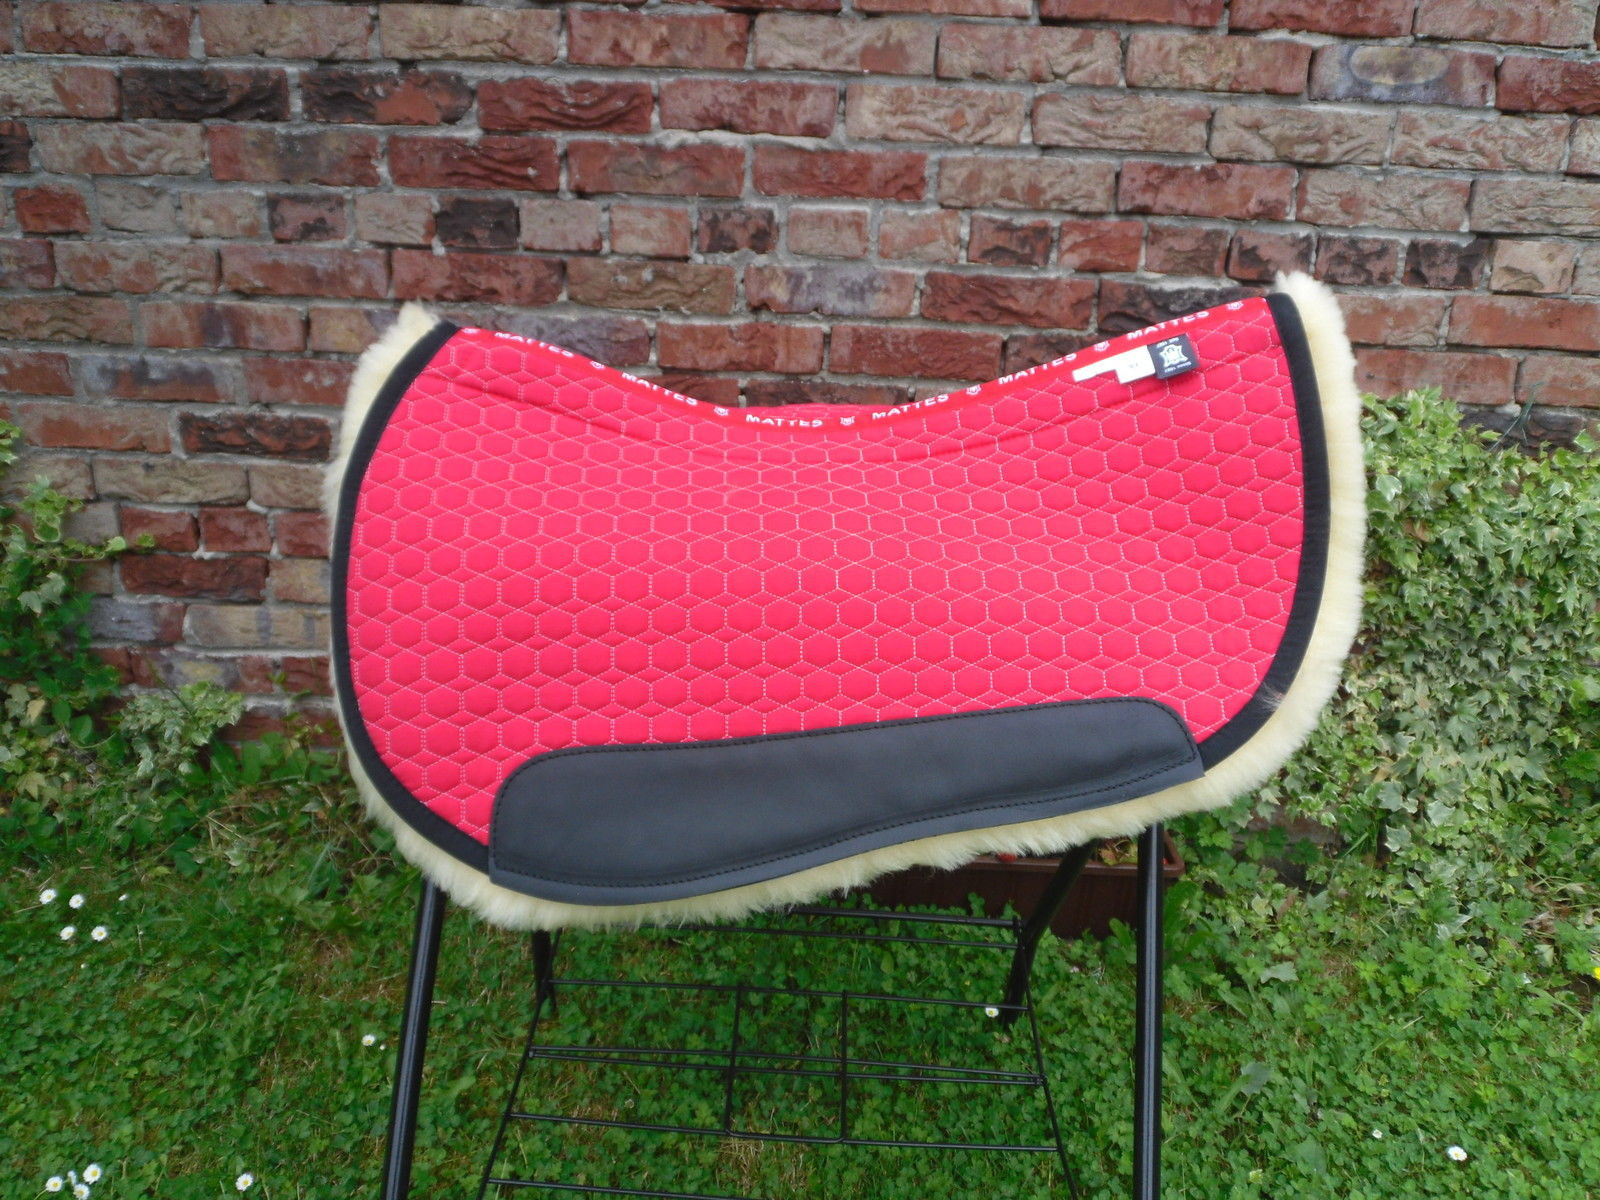 Westernpad Mattes Stoff kirsch rot Fell hellgelb 65 cm Quantum Western S&L